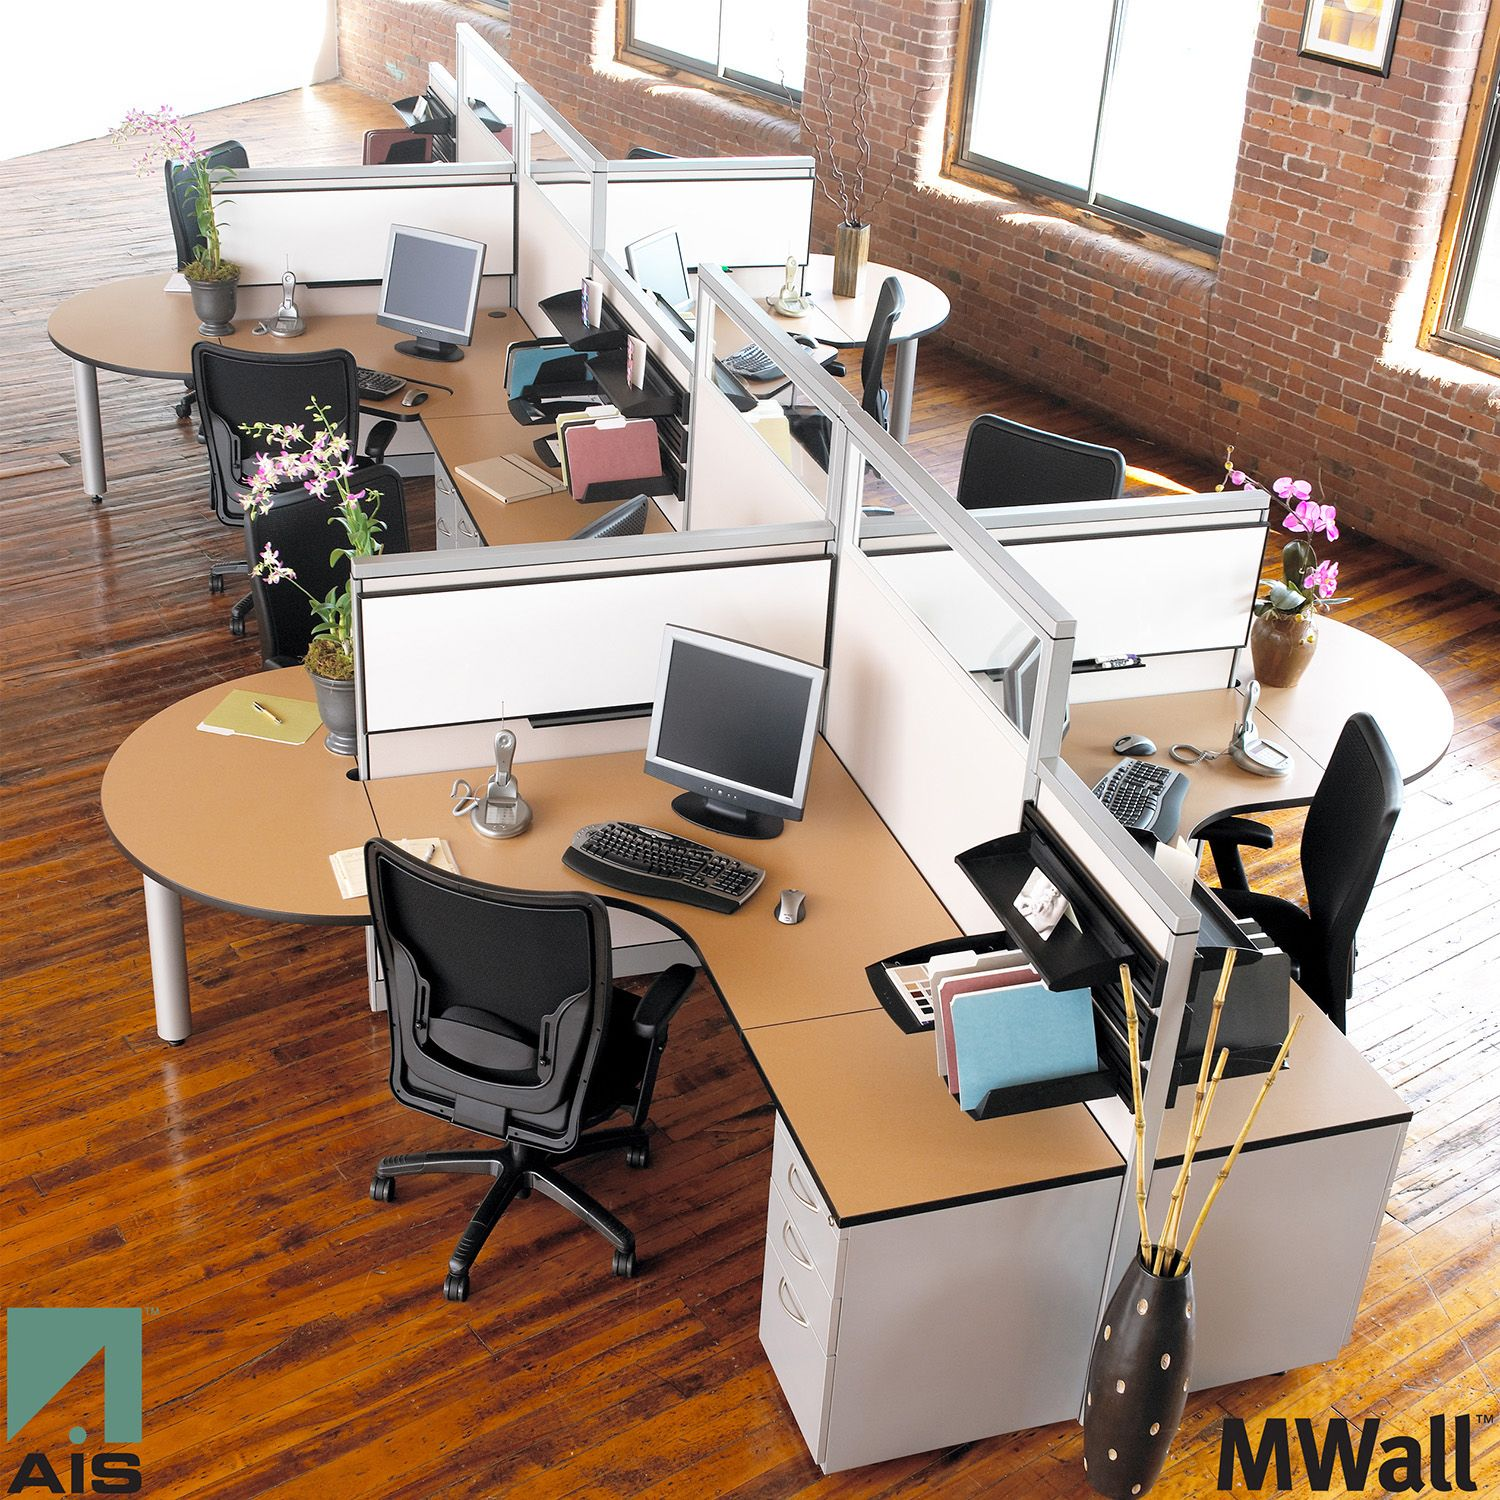 Mwall Ais In 2020 Used Office Furniture Furniture Office Furniture Manufacturers